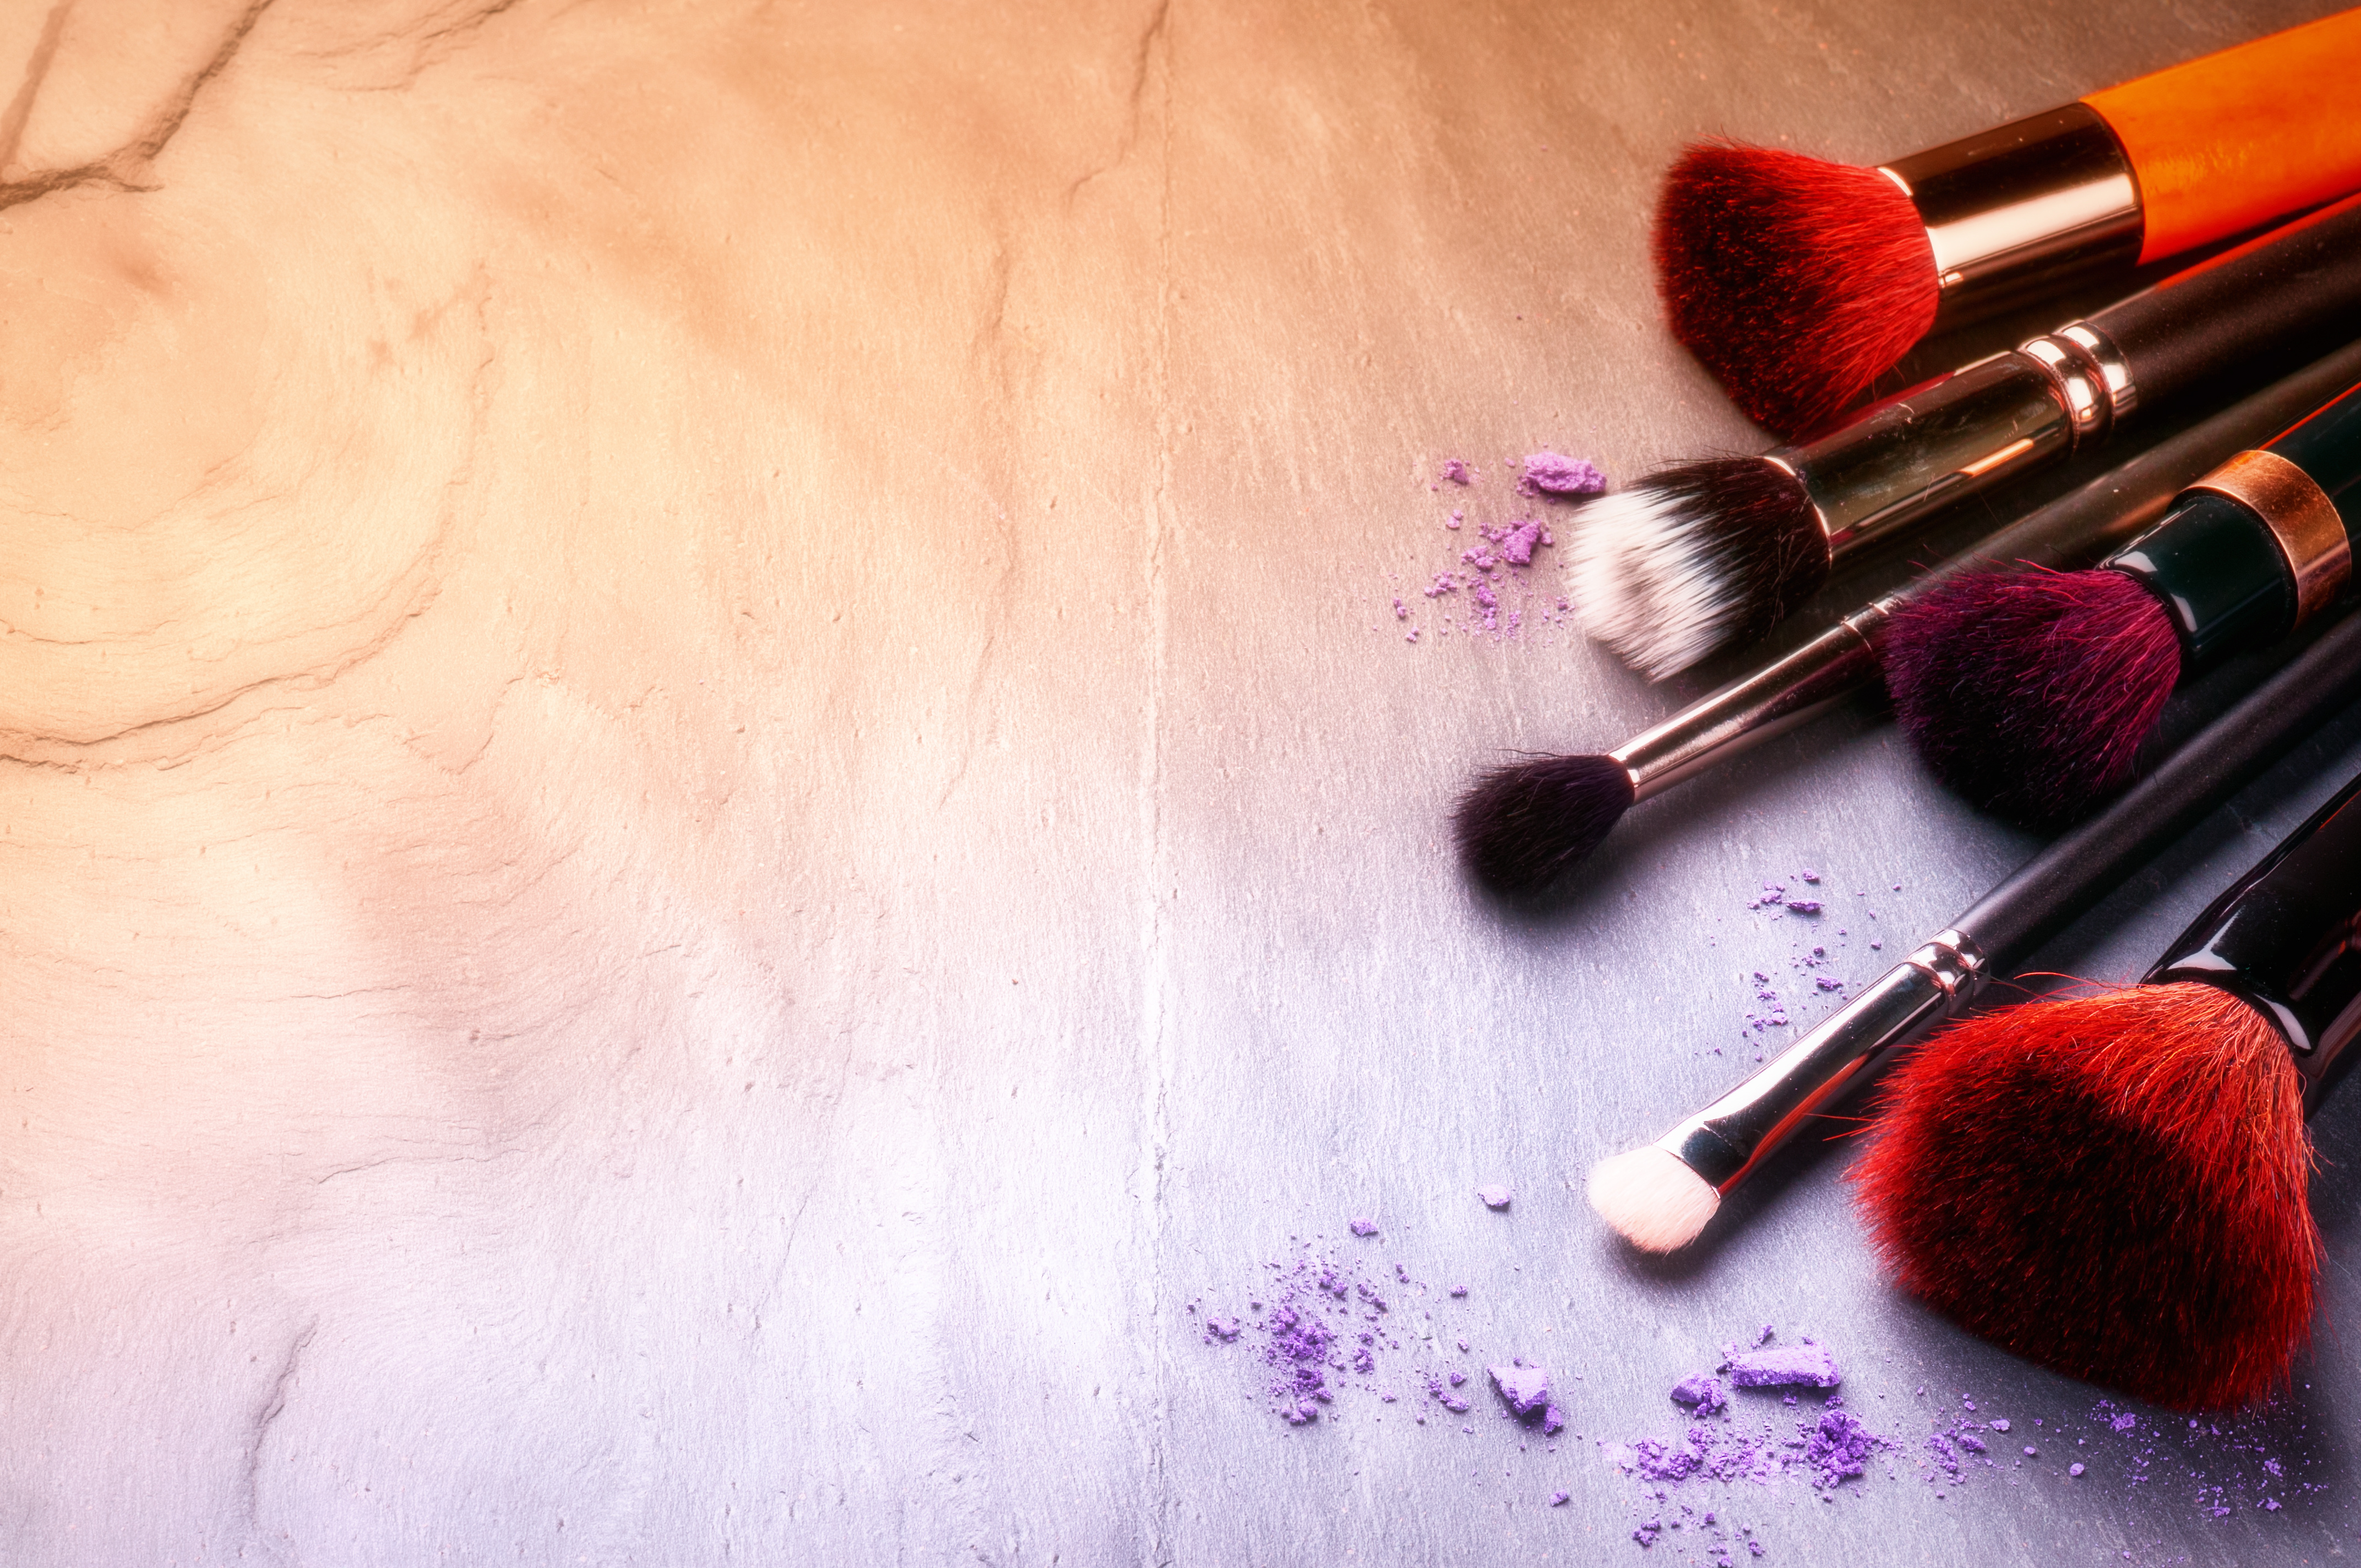 Ranking the top 10 cosmetic MLMs of 2019